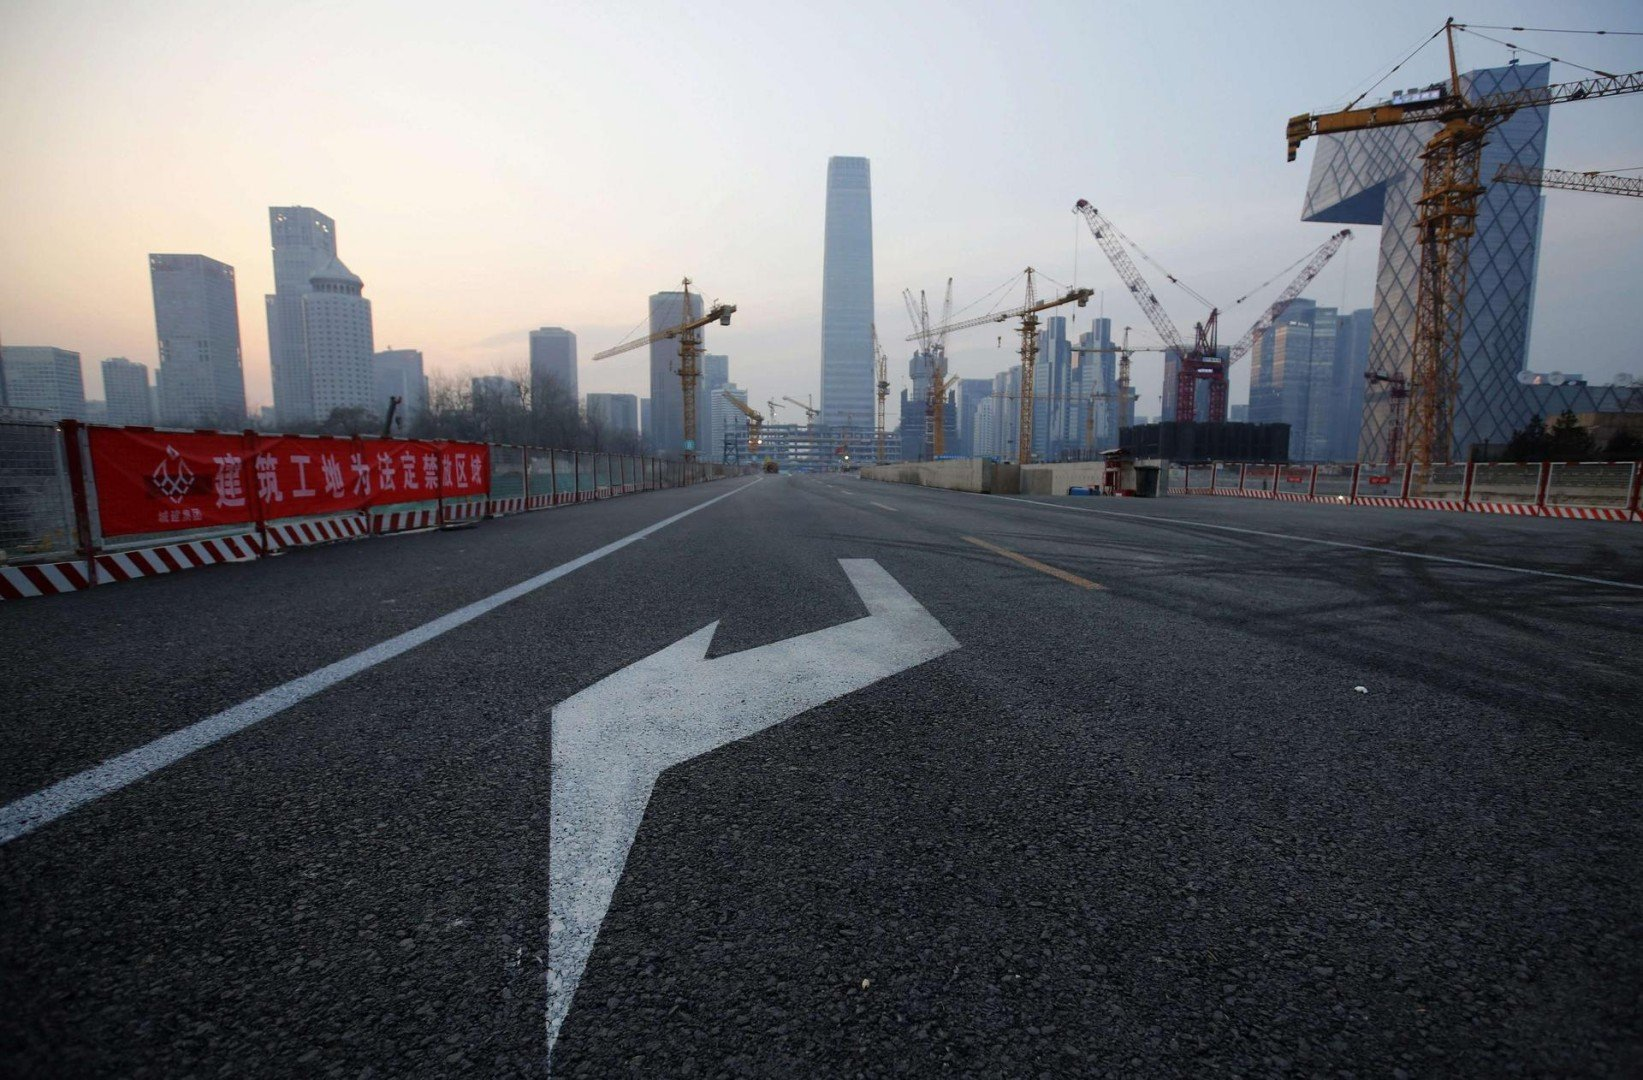 China's financing curbs raise credit crunch fears | South China